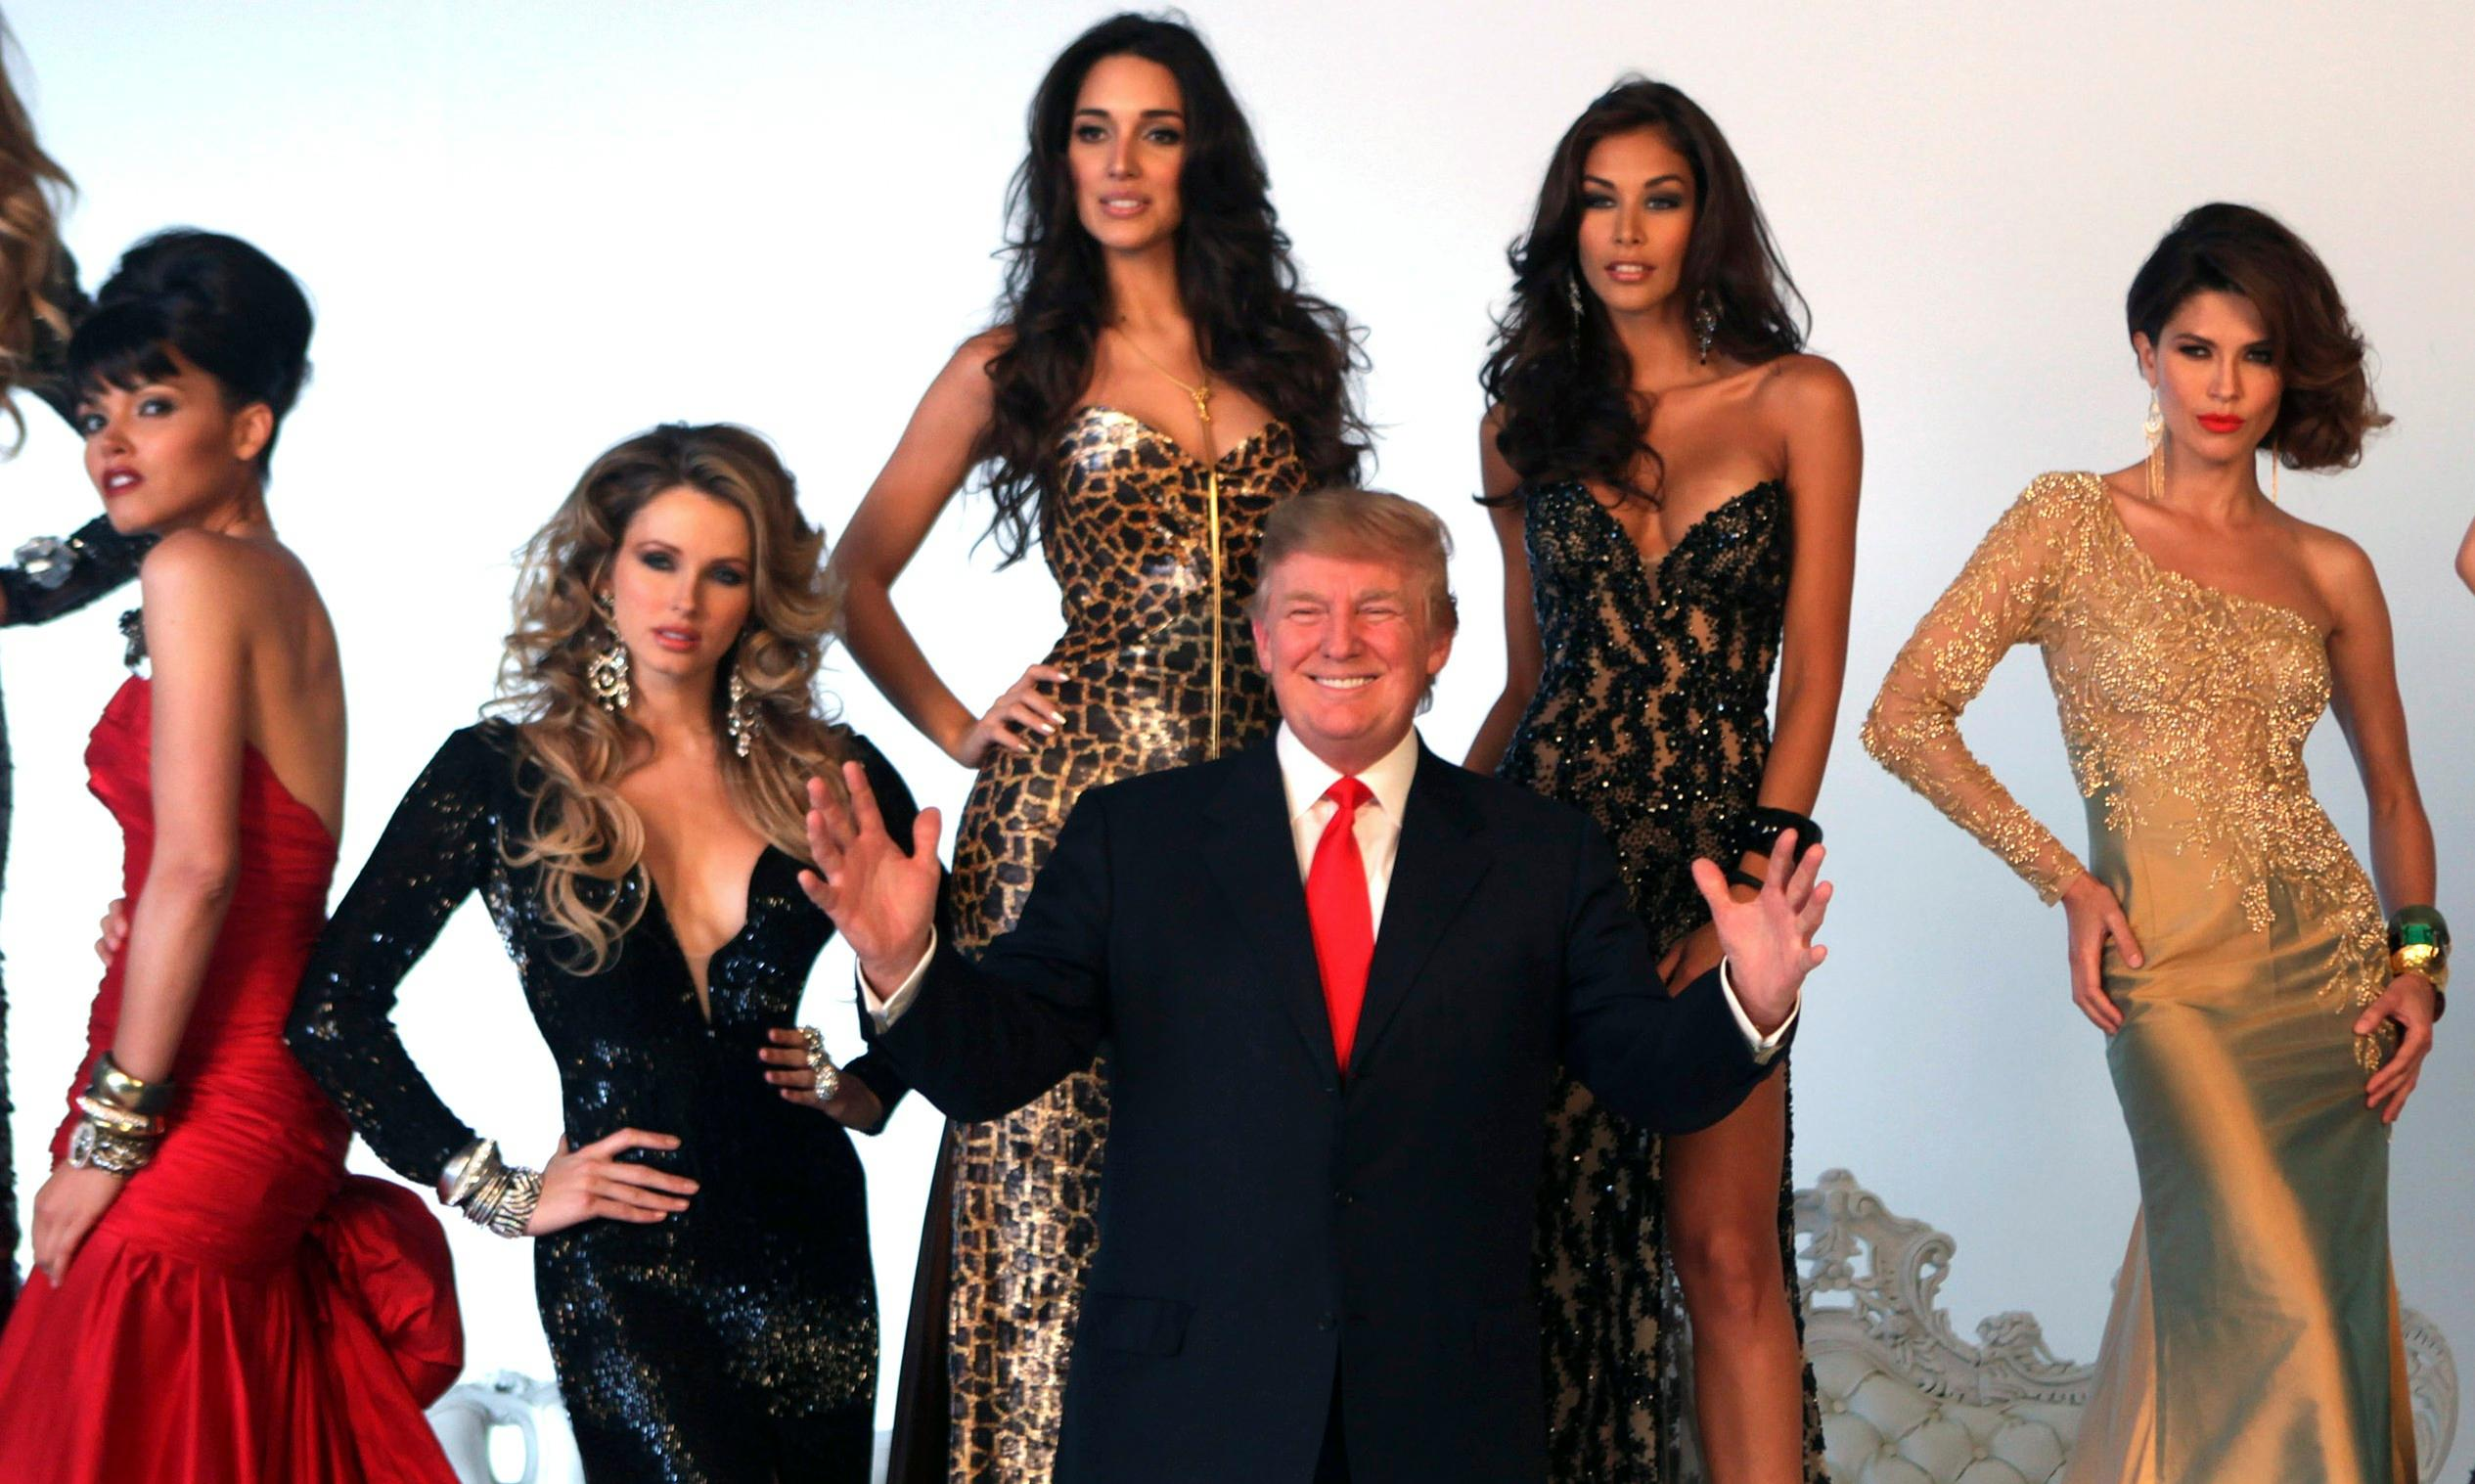 Donald Trump files $500m lawsuit against Univision for pulling Miss USA